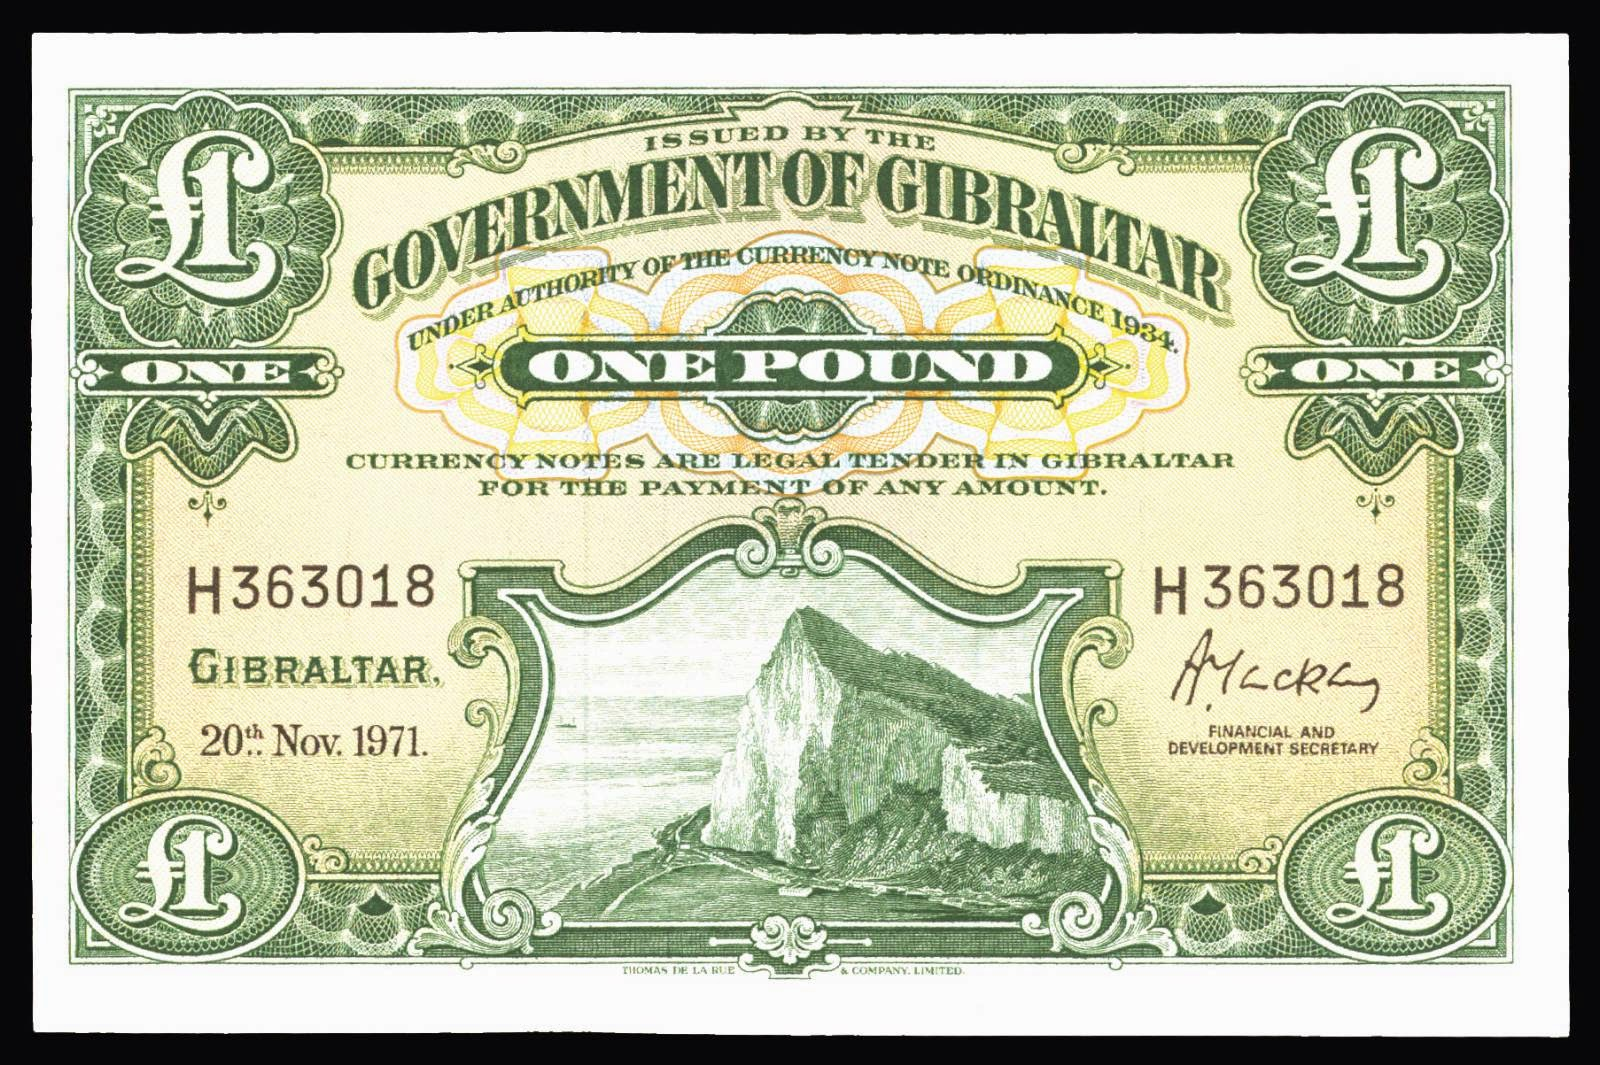 Gibraltar 1 Pound Note 1971 World Banknotes Amp Coins